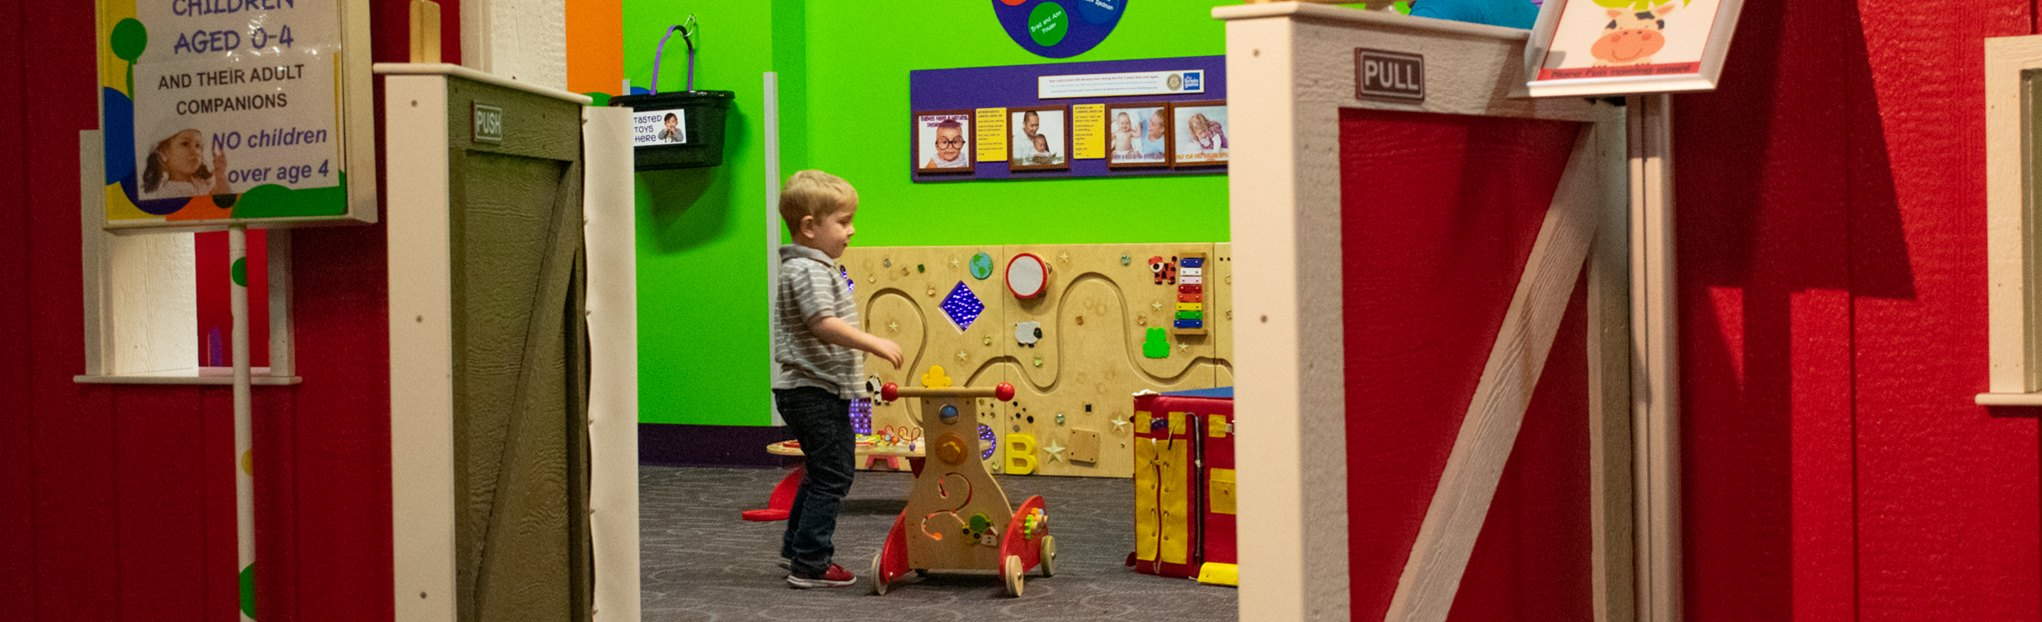 wiggles & giggles | preschool | toddler | exhibits | Children's Museum of La Crosse | funmuseum.org